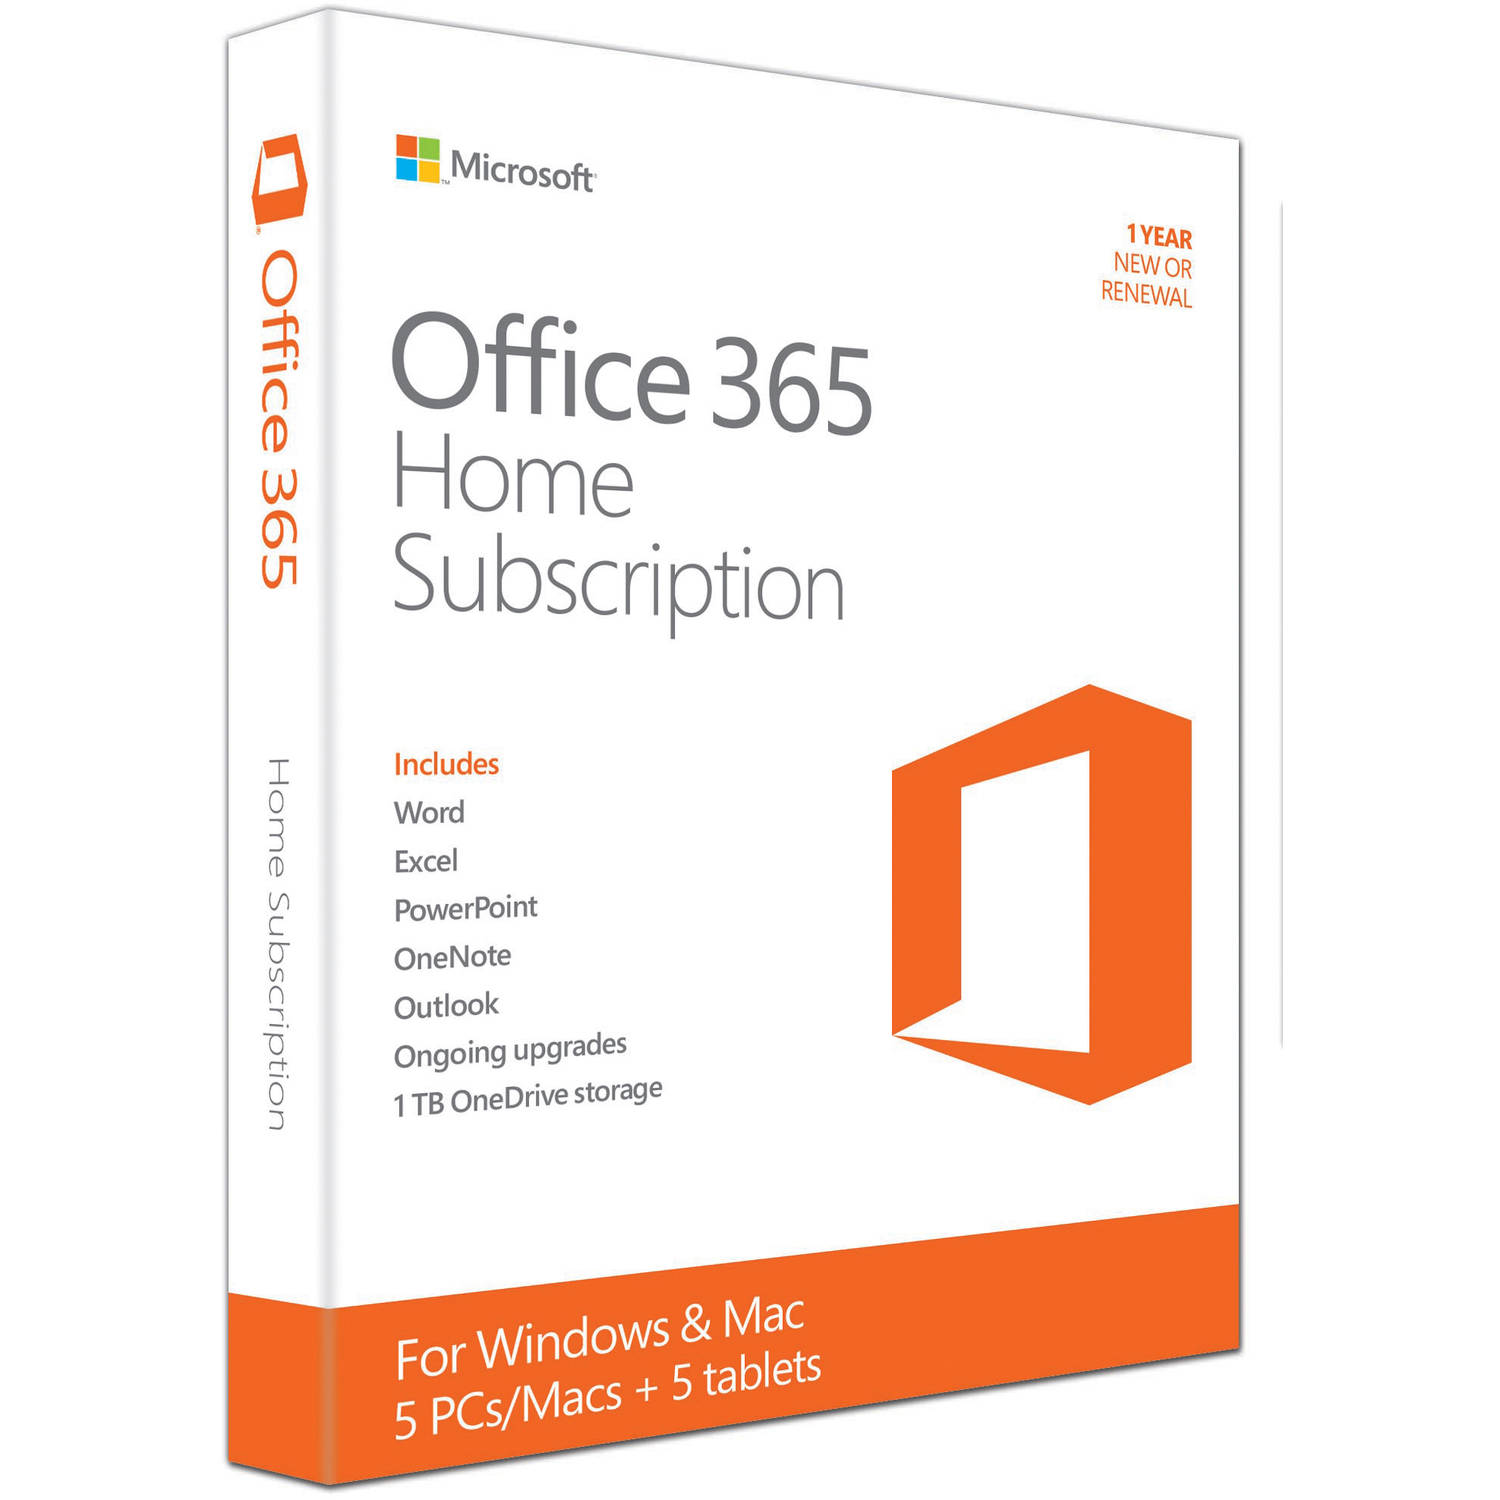 microsoft office 365 home 5 pcsmacs 5 tabletsipads 1 year subscription walmartcom